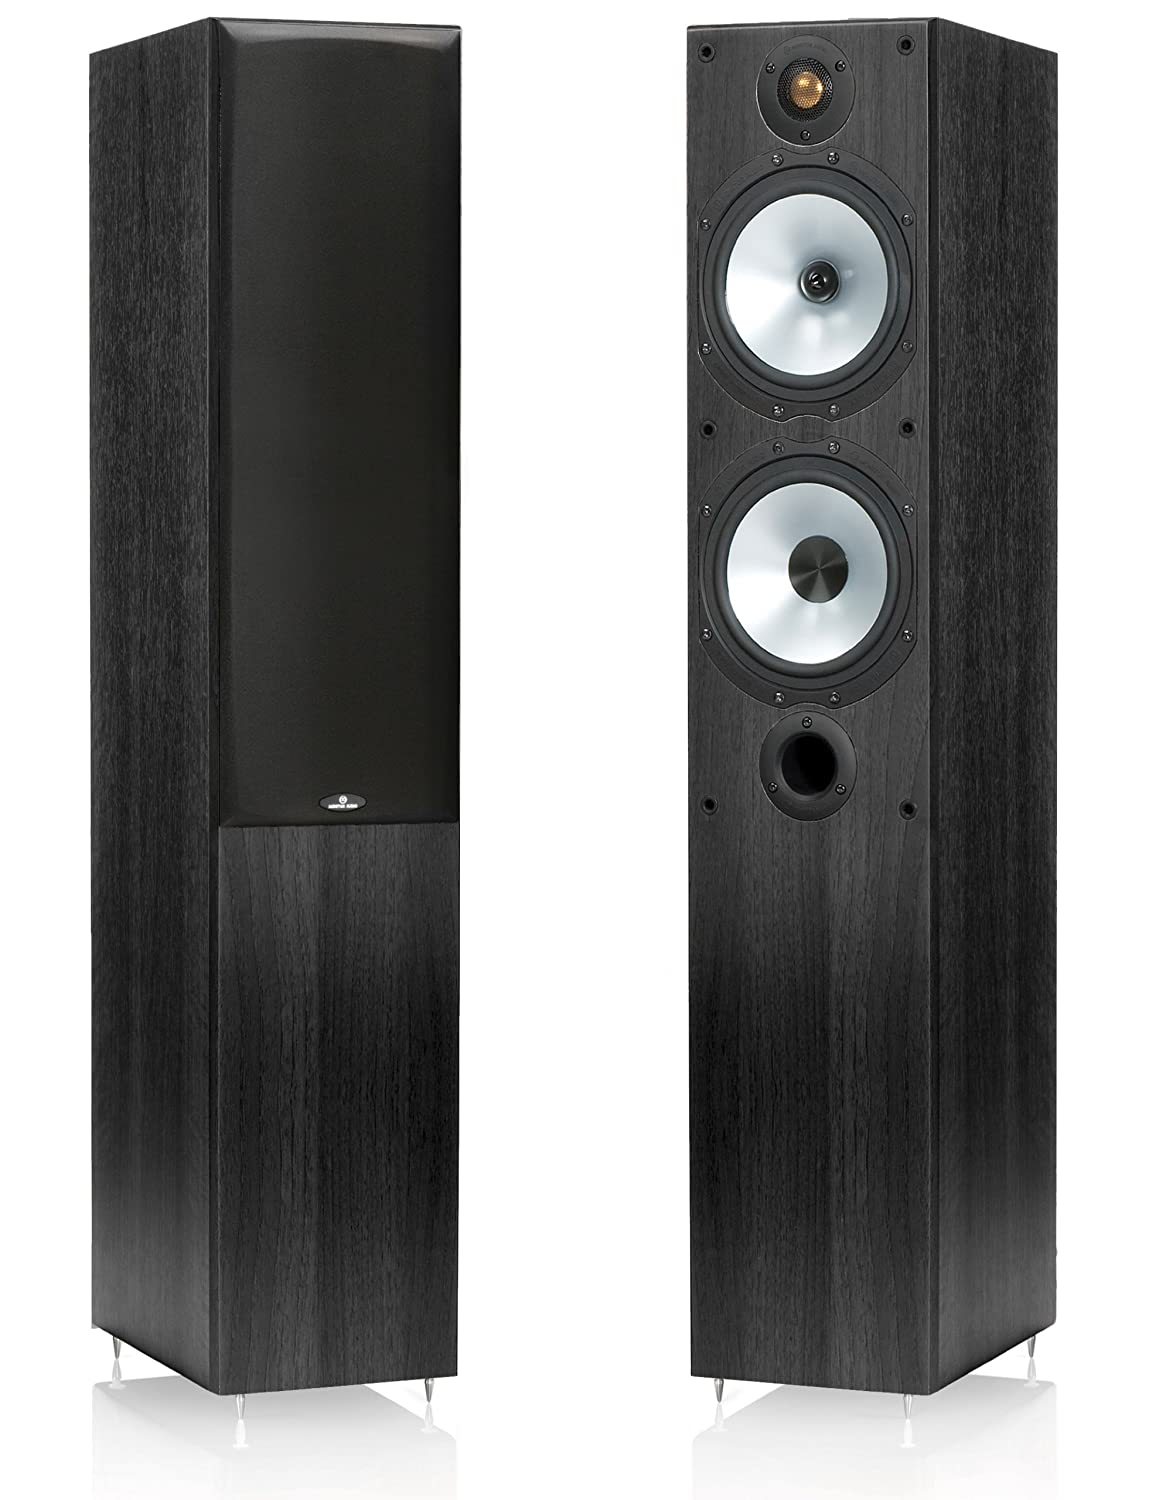 Monitor Audio MR4 150W Negro Altavoz - Altavoces (Set de Altavoces, 2.0 Canales, Piso, 16,5 cm (6.5